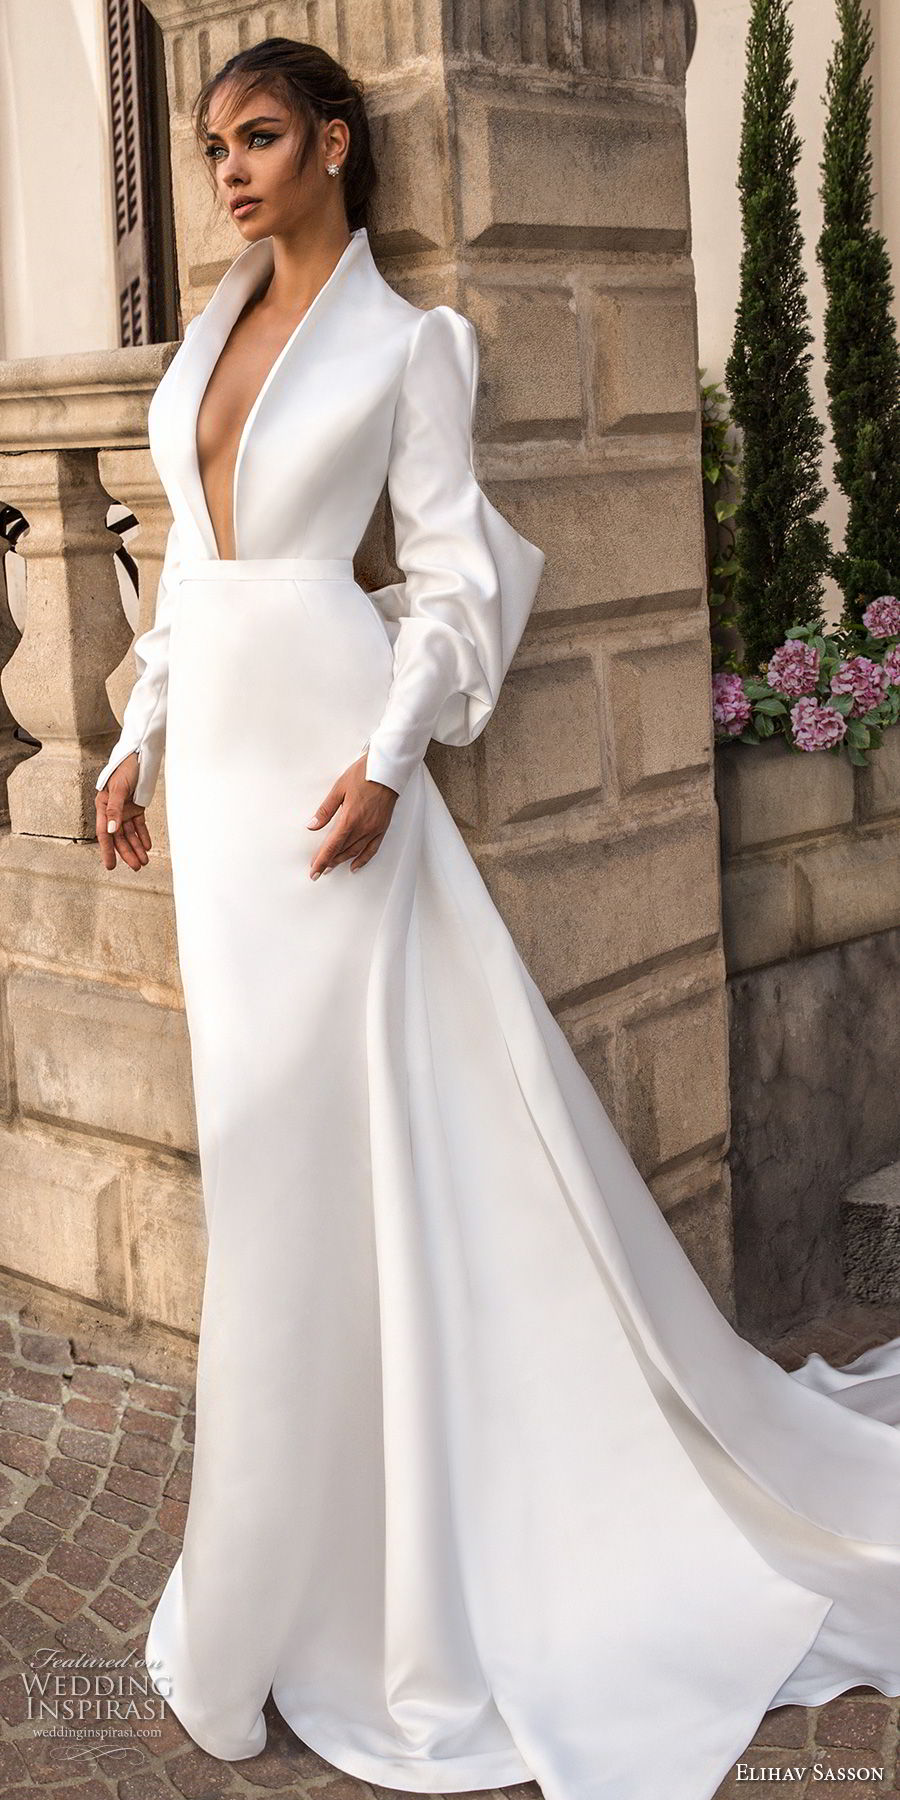 elihav sasson 2018 capsule bridal long mutton sleeves queen anne plunging v neck simple clean modern sheath wedding dress keyhole back long train (15) mv